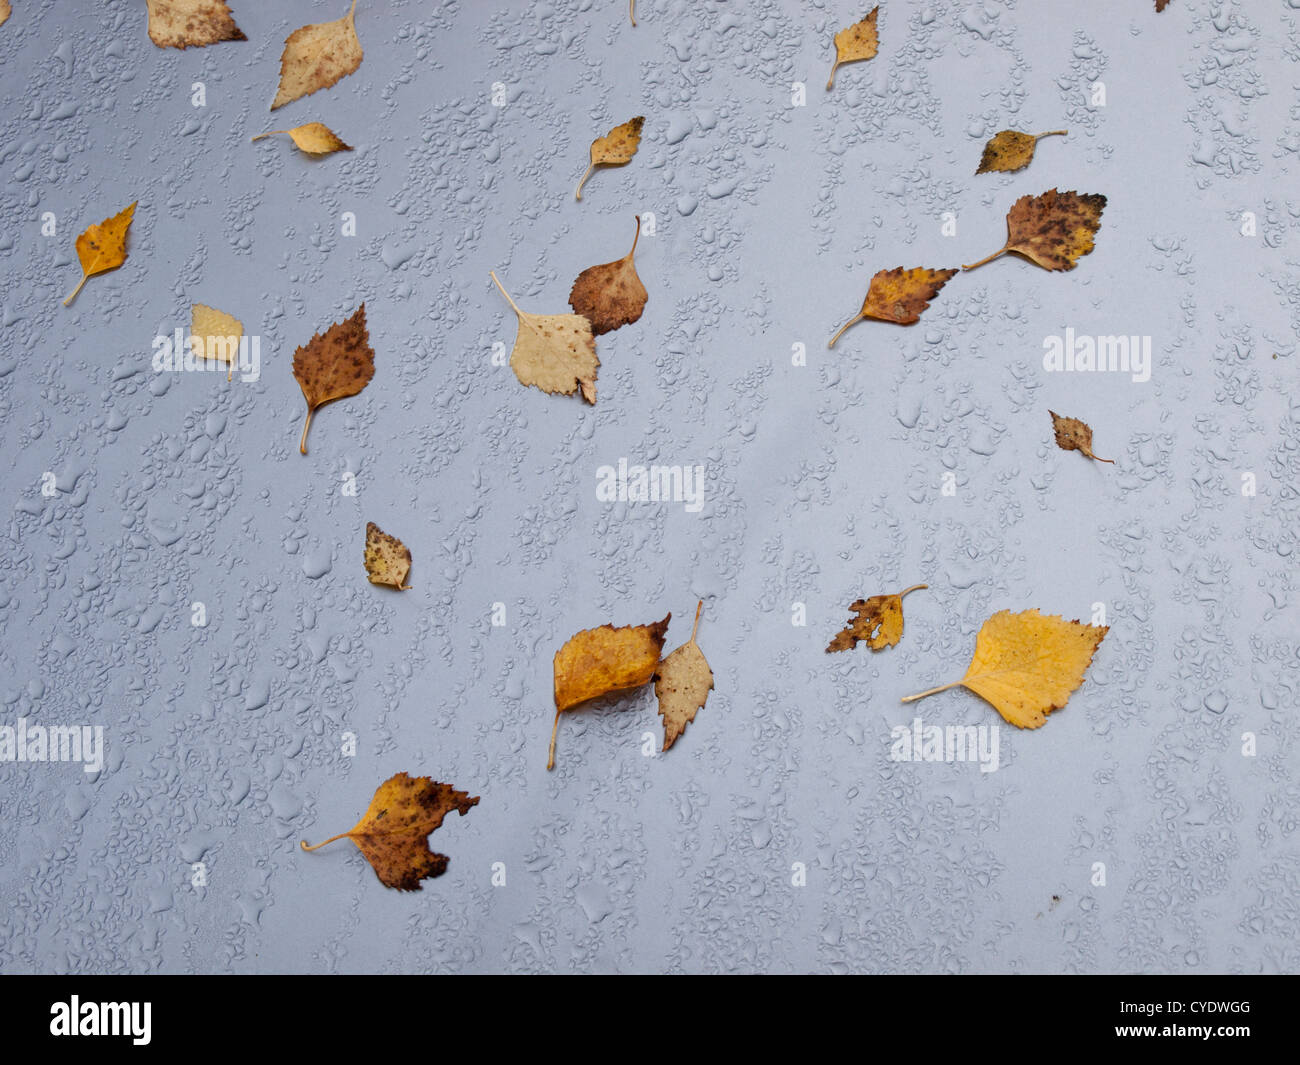 Yellow and brown birch leaves on a gray car hood with rain or dew drops - Stock Image